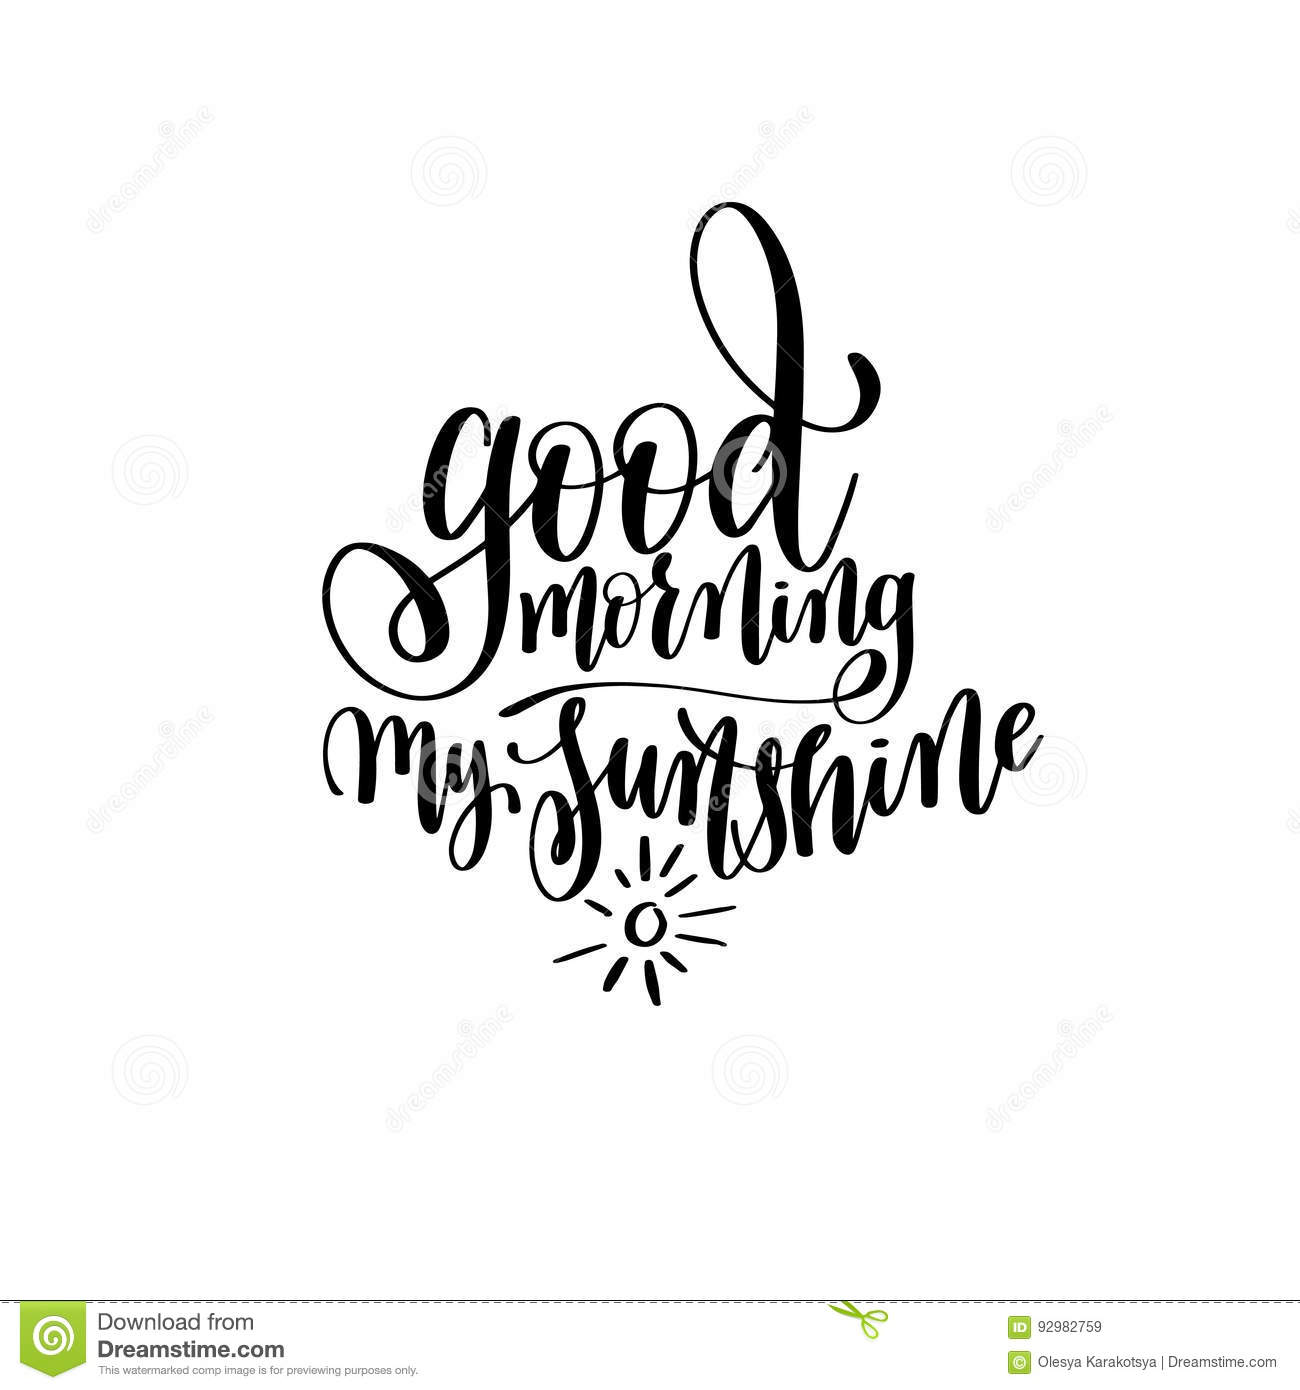 Good Morning My Love Black And White : Good morning my sunshine black and white hand written